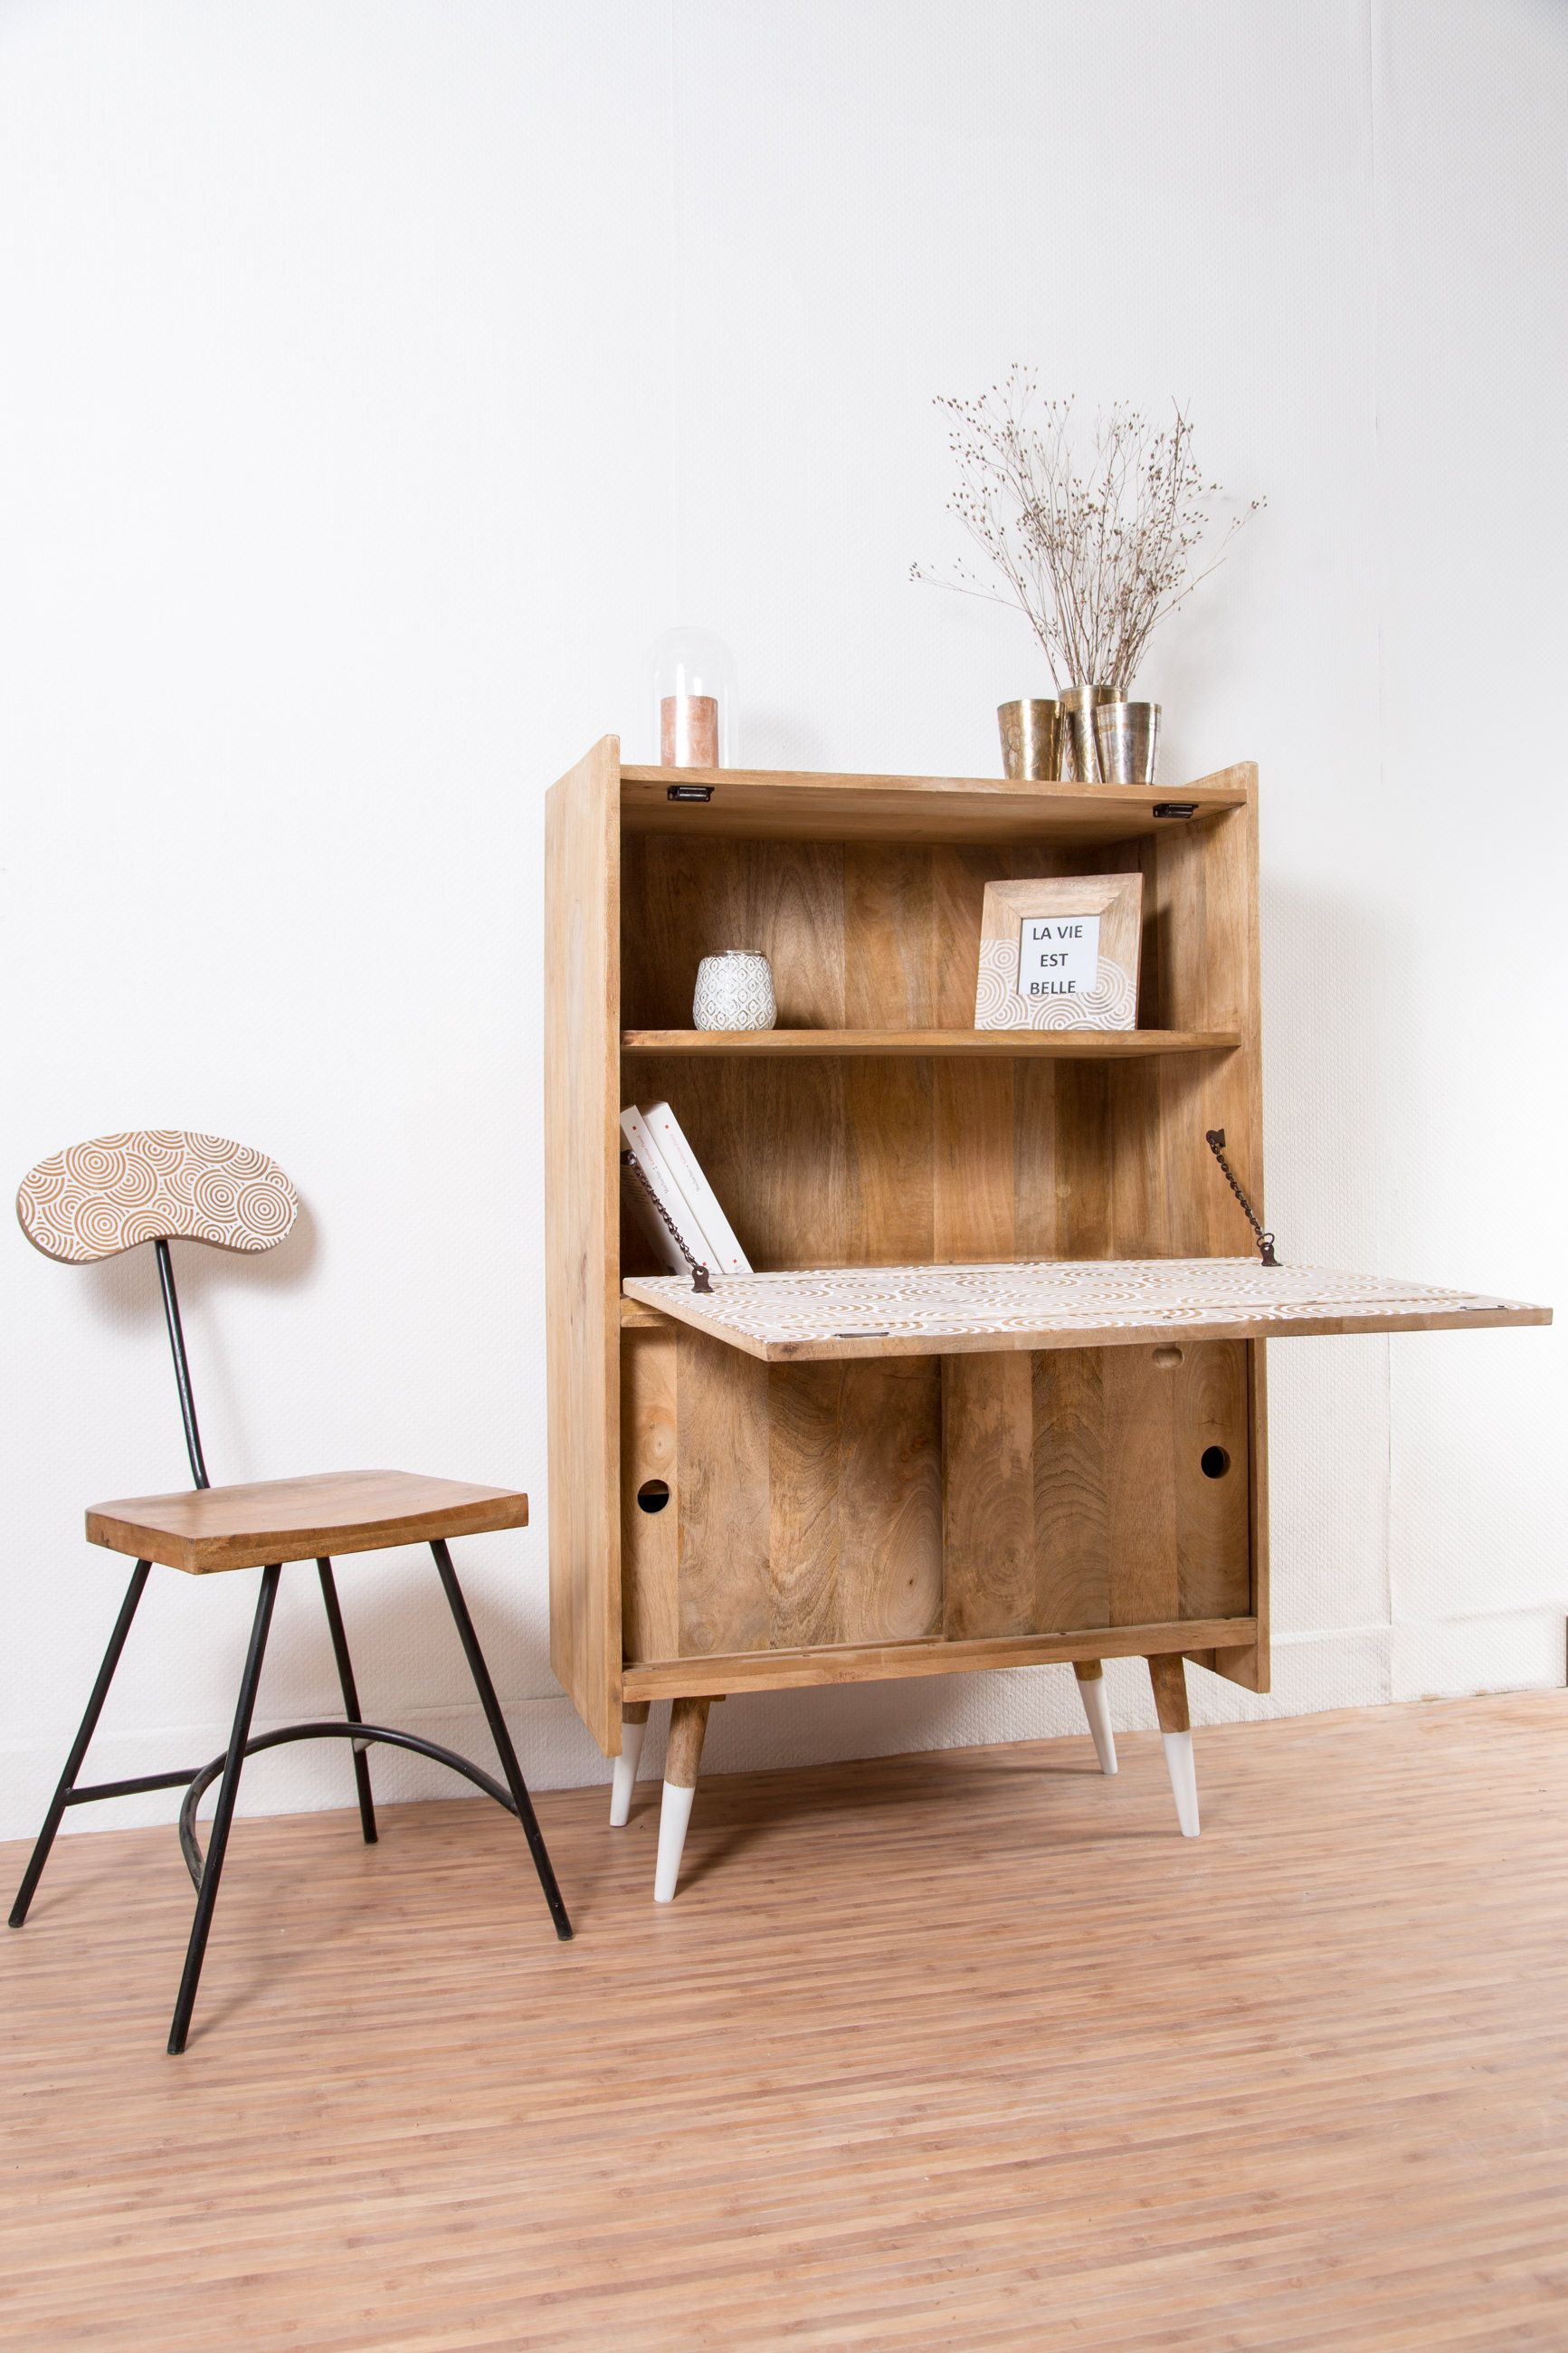 a cute and clever desk with collapsible shelf and storage made artisalement solid mango wood